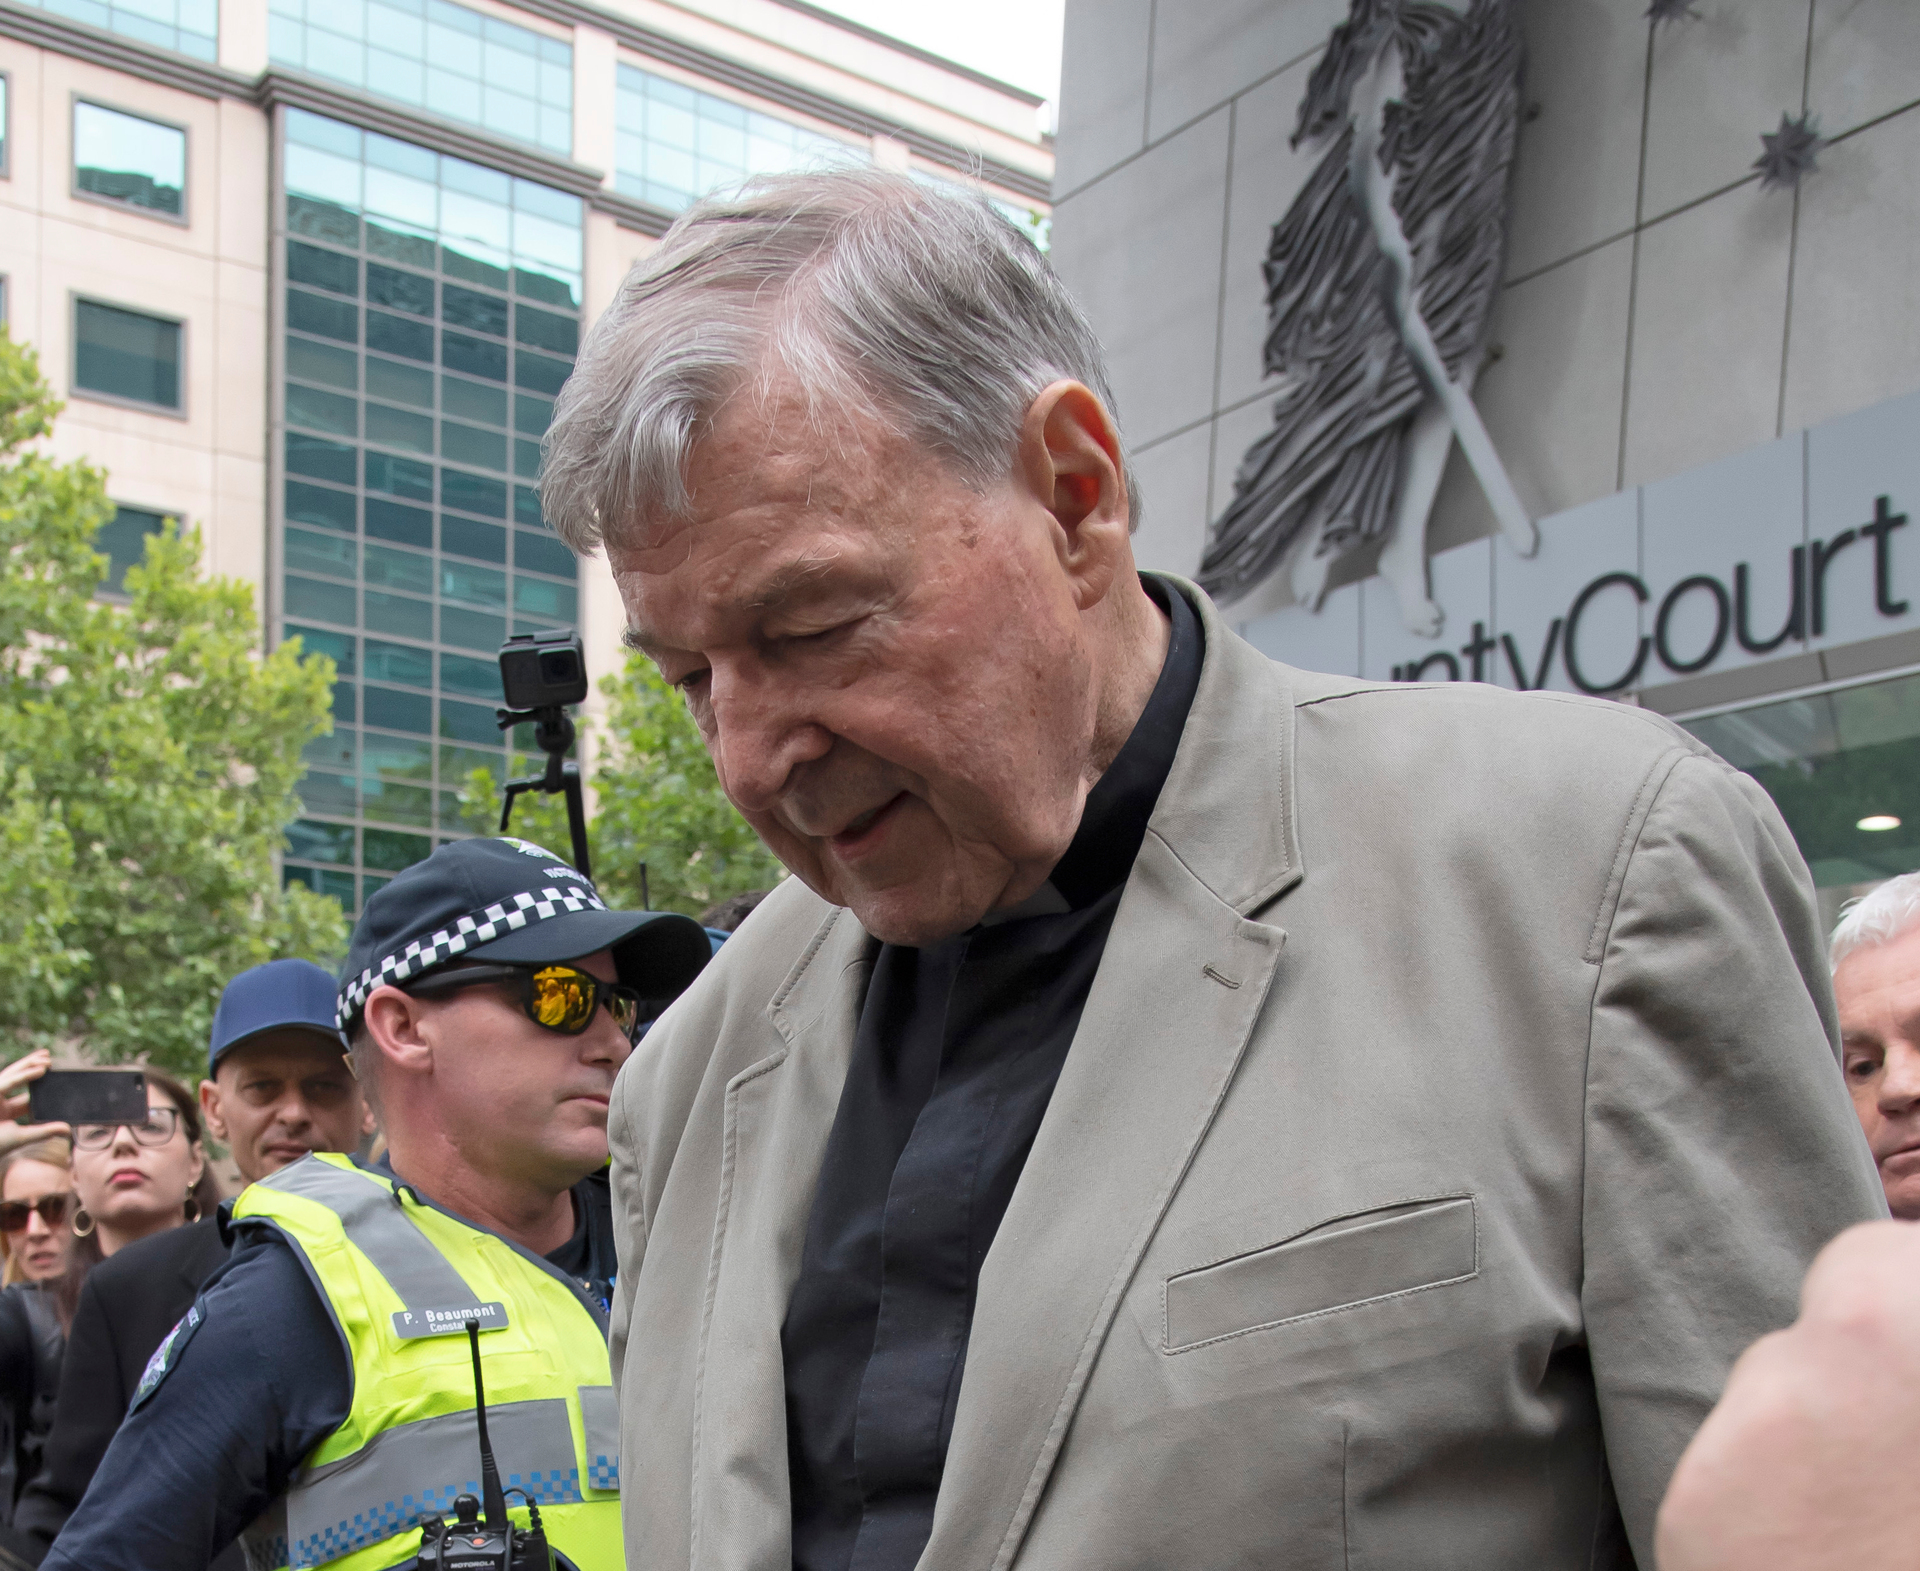 George Pell convictions deal new blow to Catholic church - NZ Herald